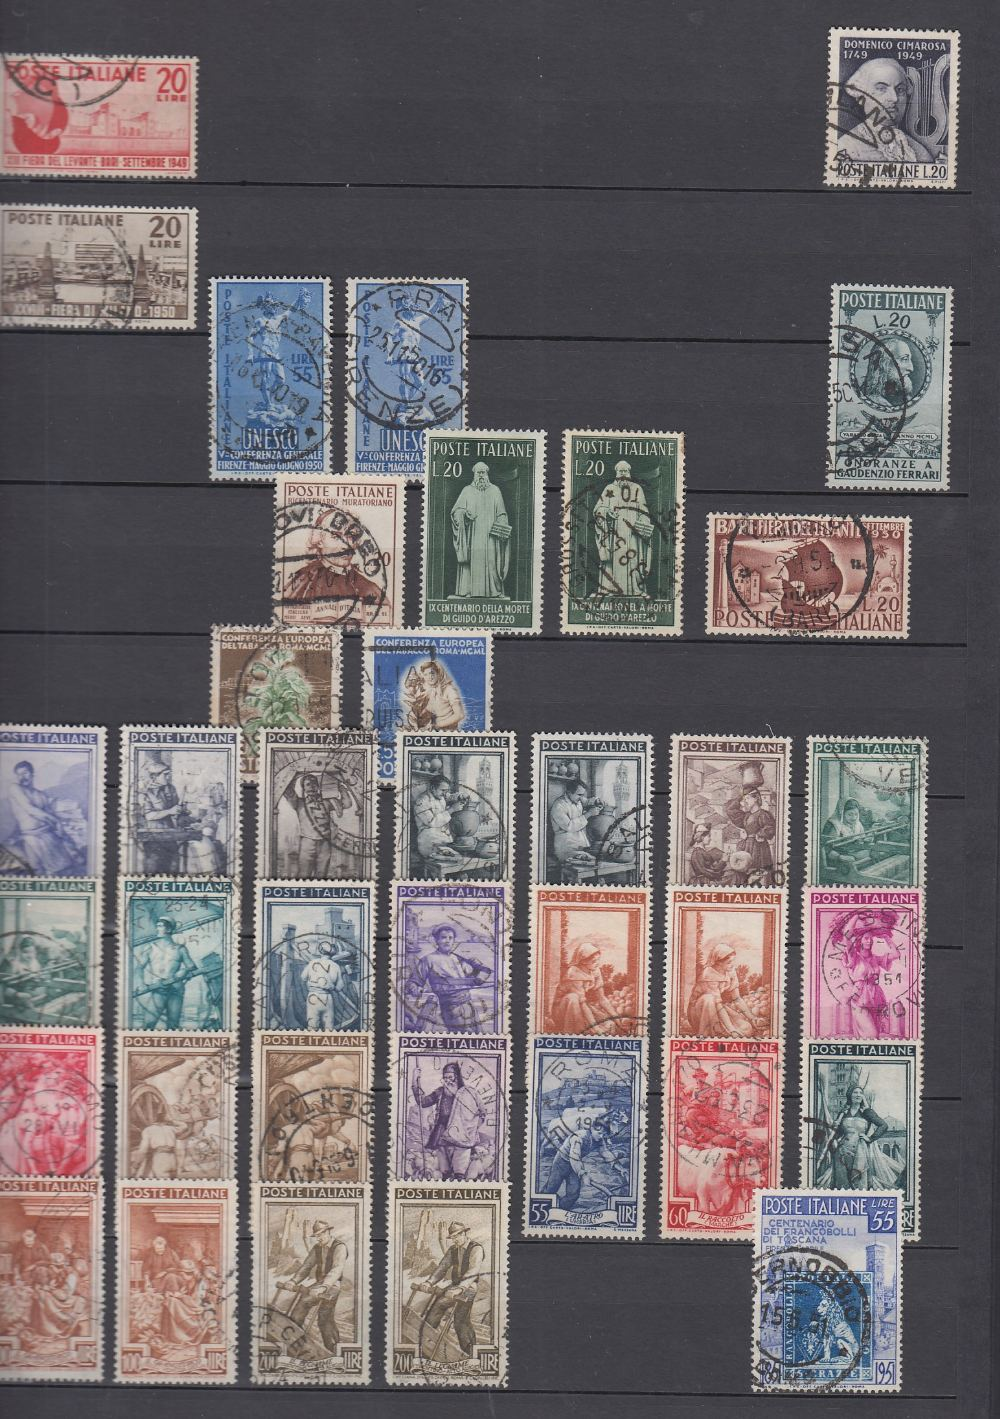 STAMPS ITALY Red Stock book with many 100's used and fine used issues, - Image 3 of 3